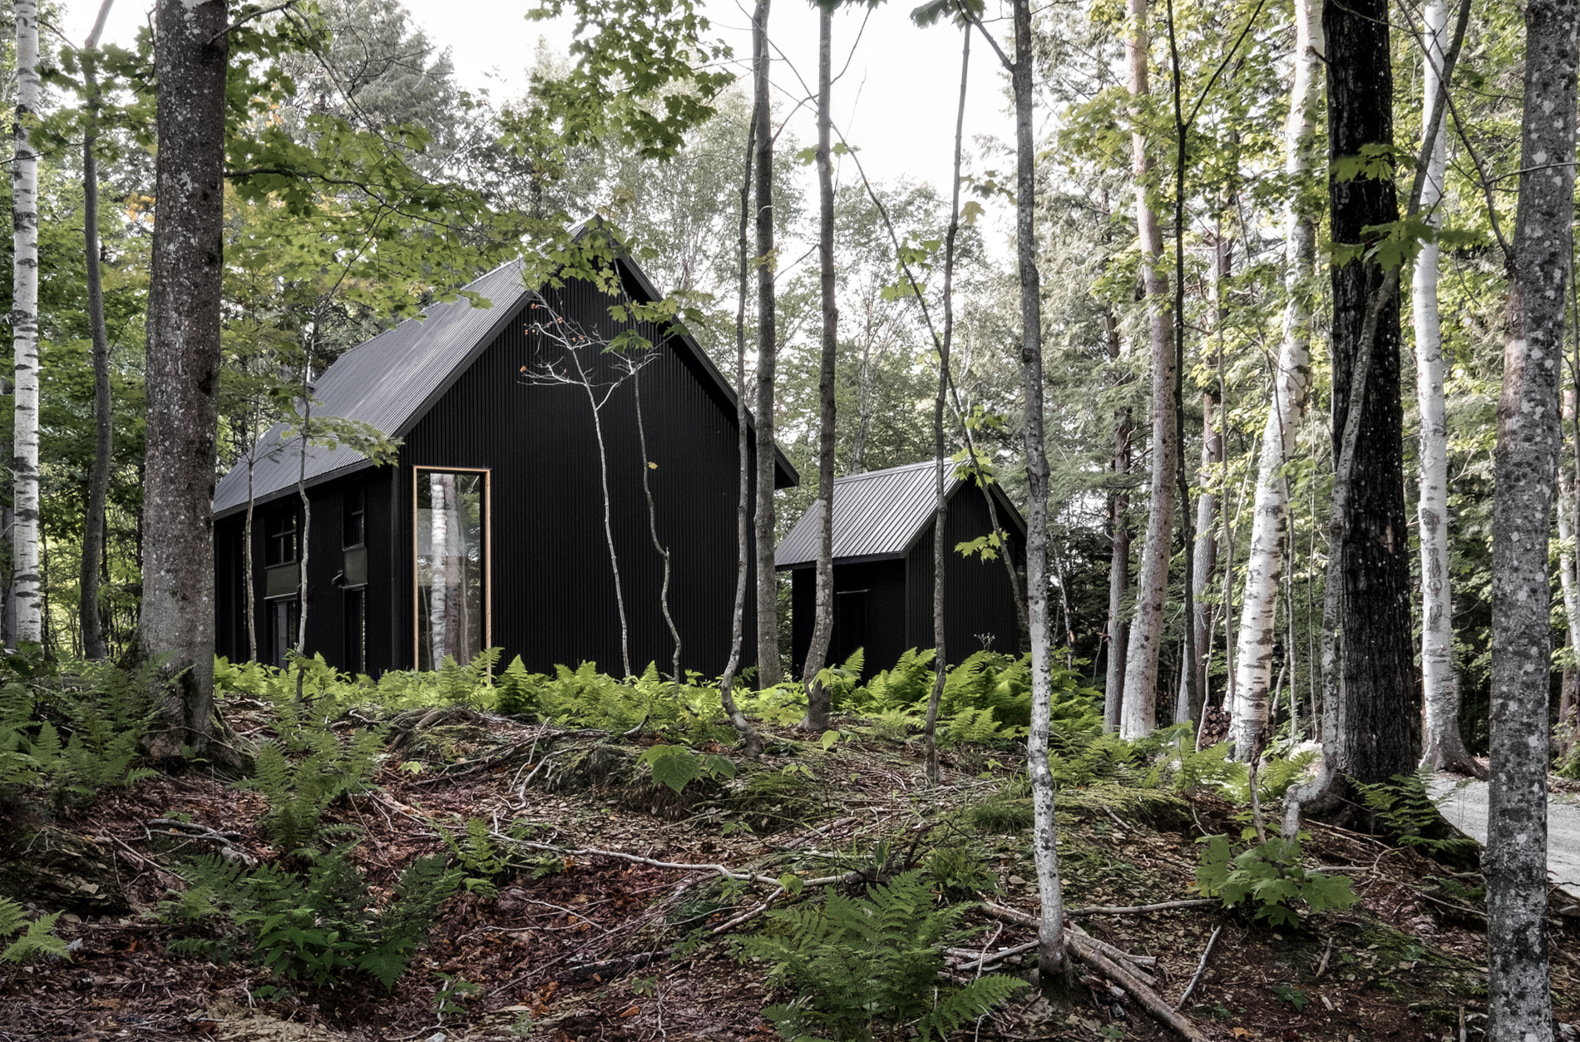 A pair of monochromatic cottages are tucked into the idyllic Canadian forestscape